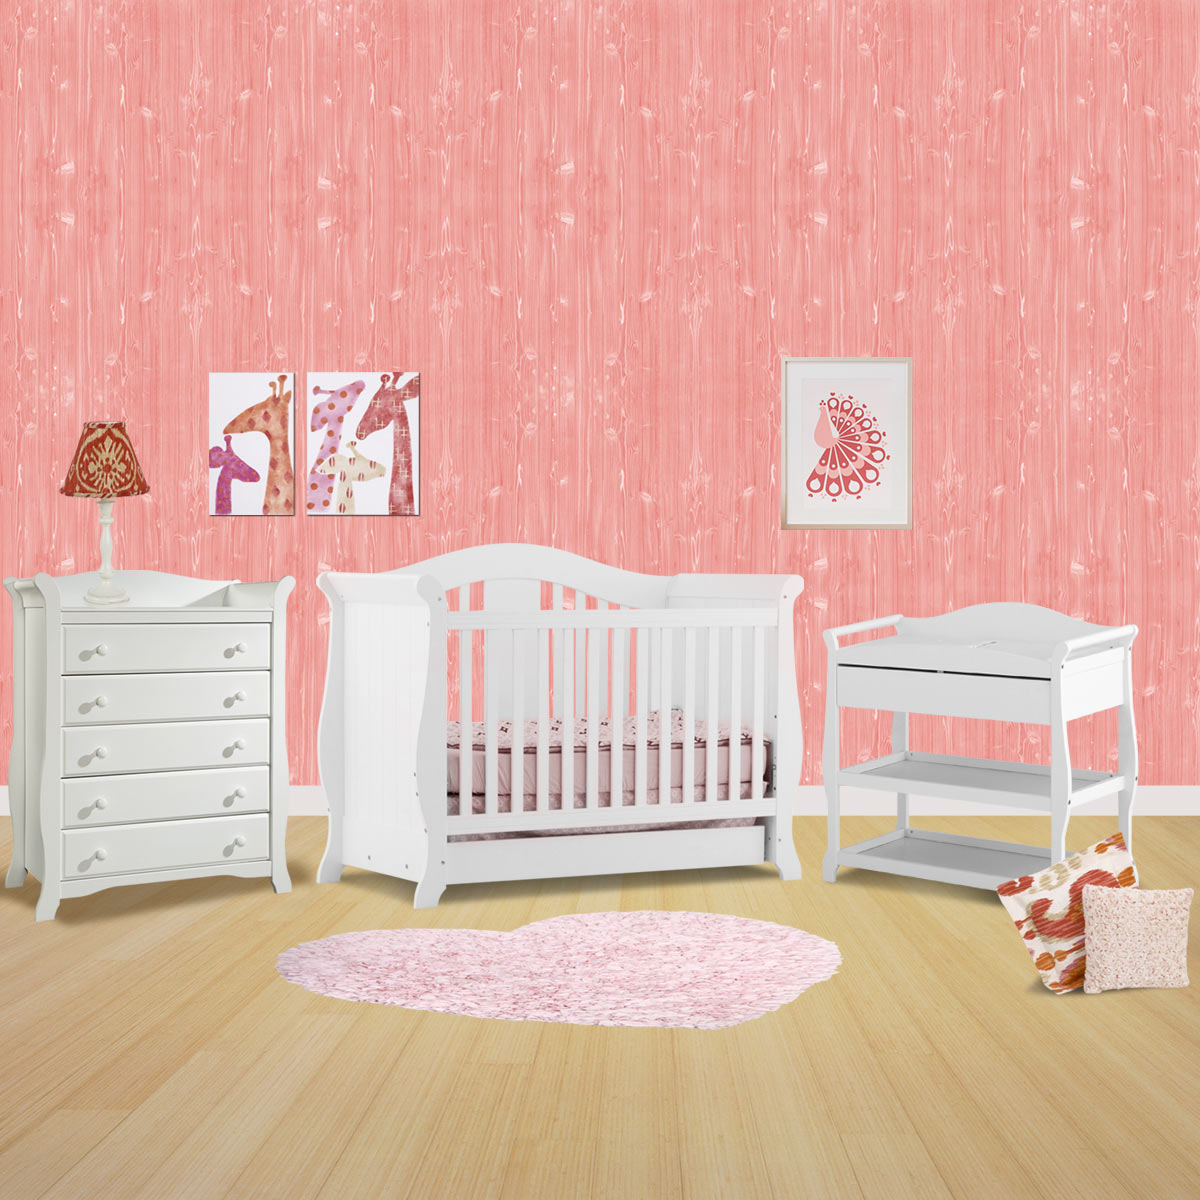 Storkcraft 3 Piece Nursery Set   Vittoria Convertible Crib, Aspen Changing  Table And Avalon 5 Drawer Dresser In White FREE SHIPPING